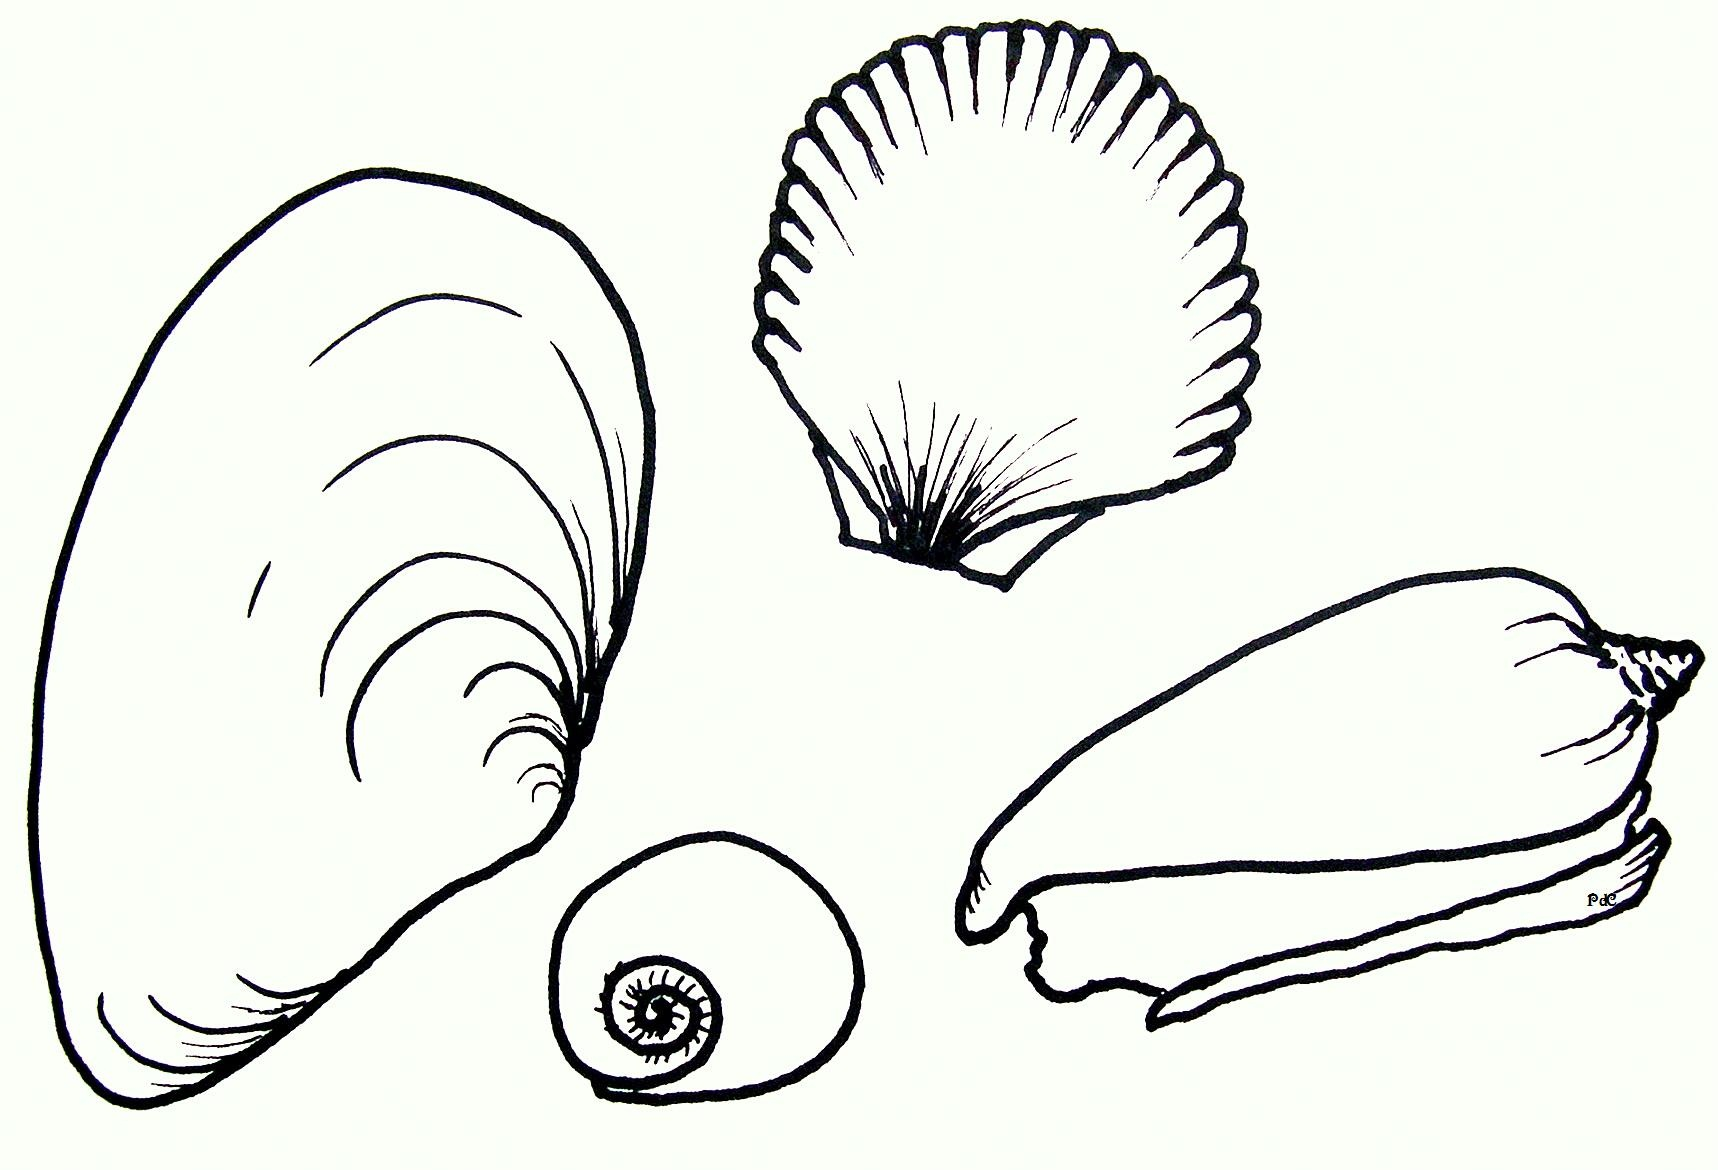 seashell coloring pages - photo#5